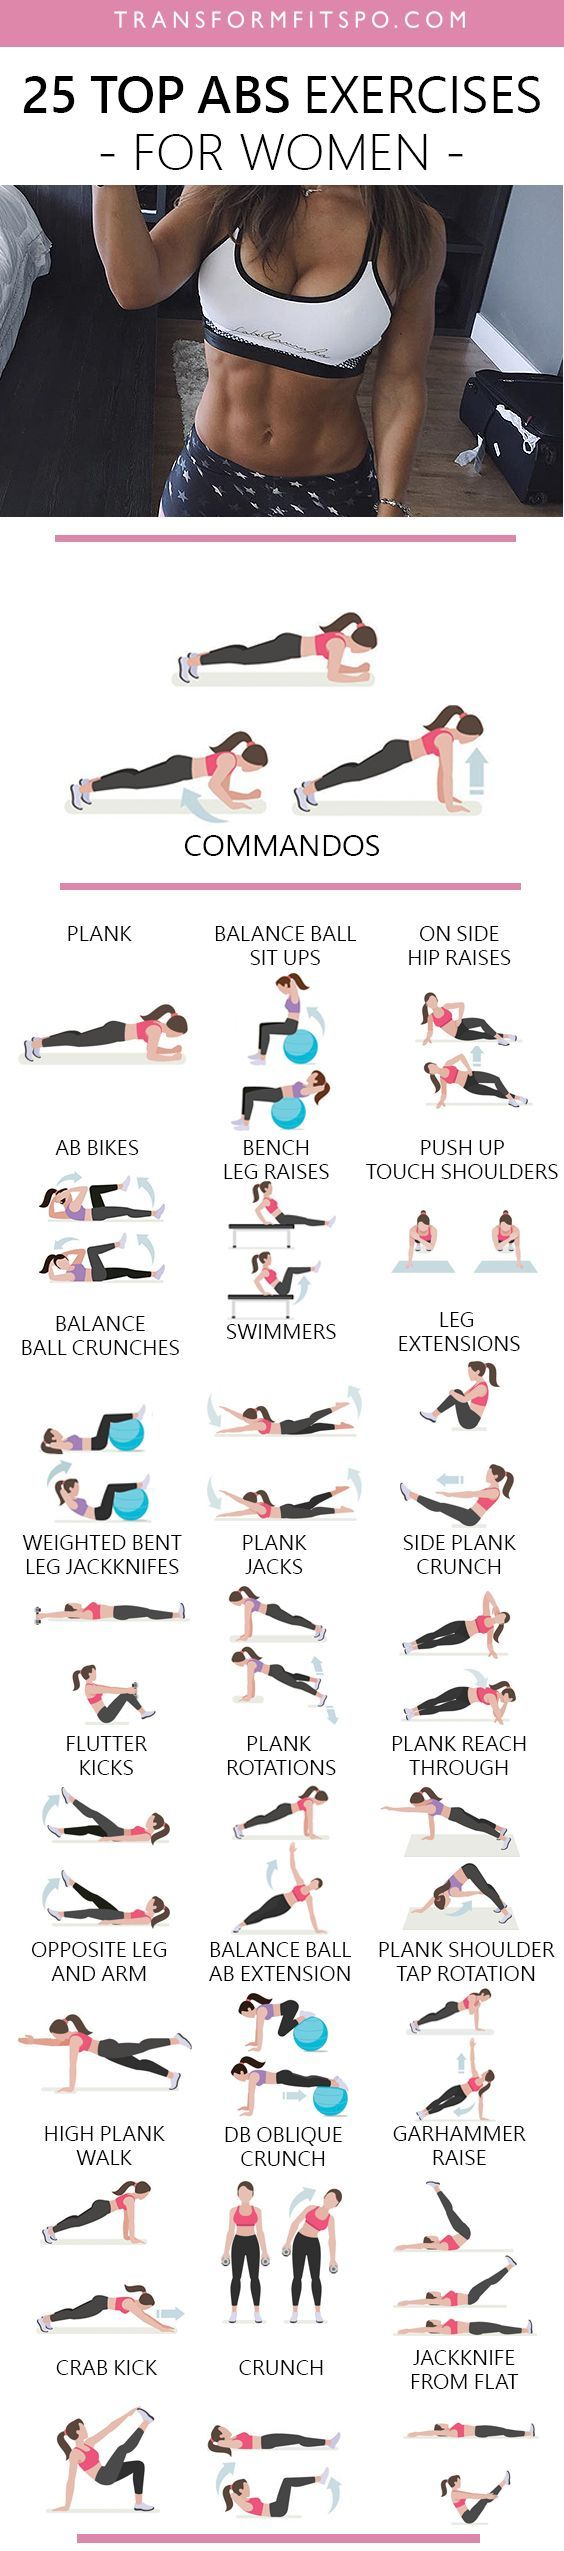 Repin and share if you liked this massive workout list! http://amzn.to/2s1pFNY